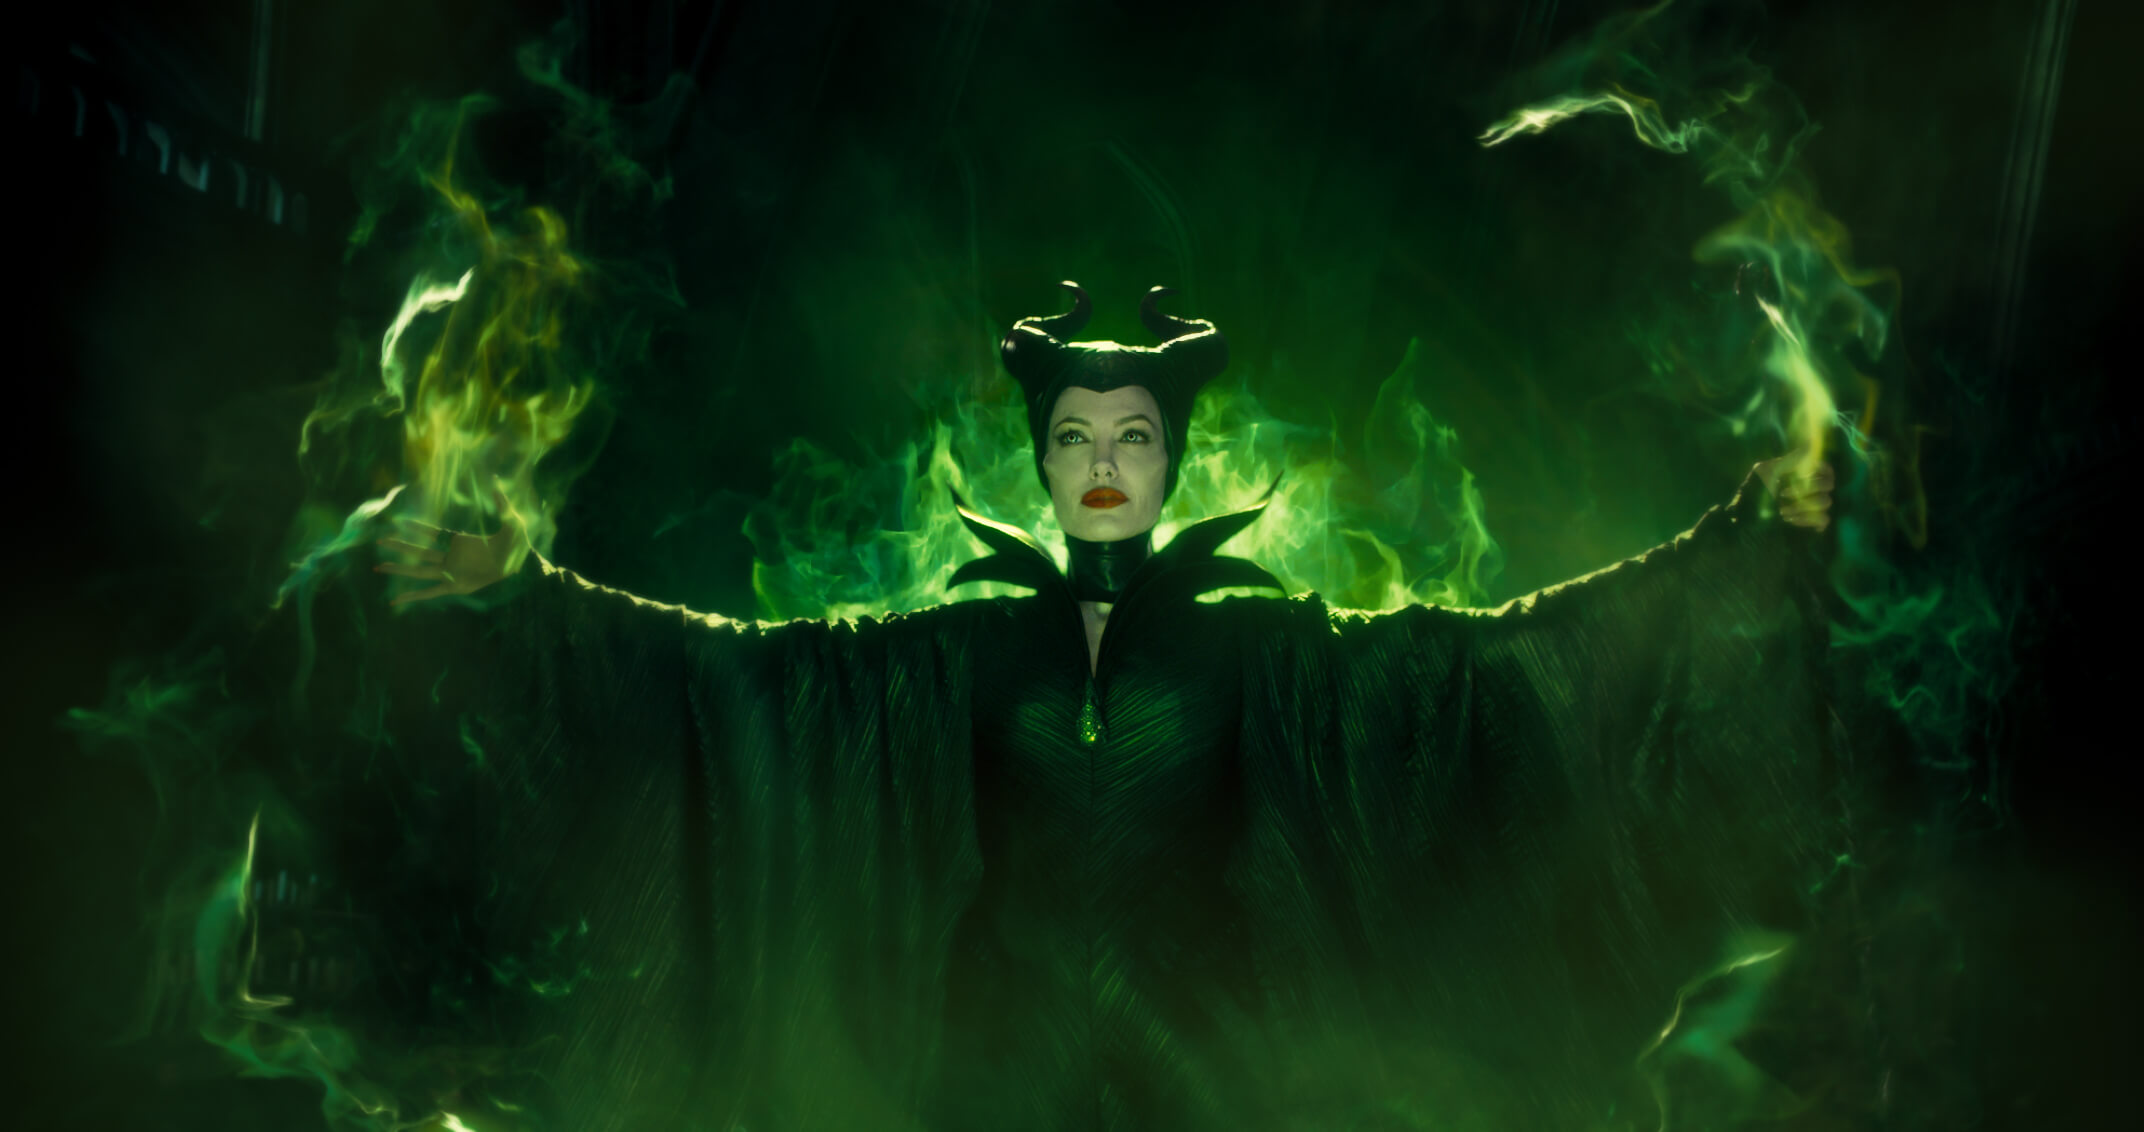 Maleficent-2014-image-maleficent-2014-36785715-2144-1132